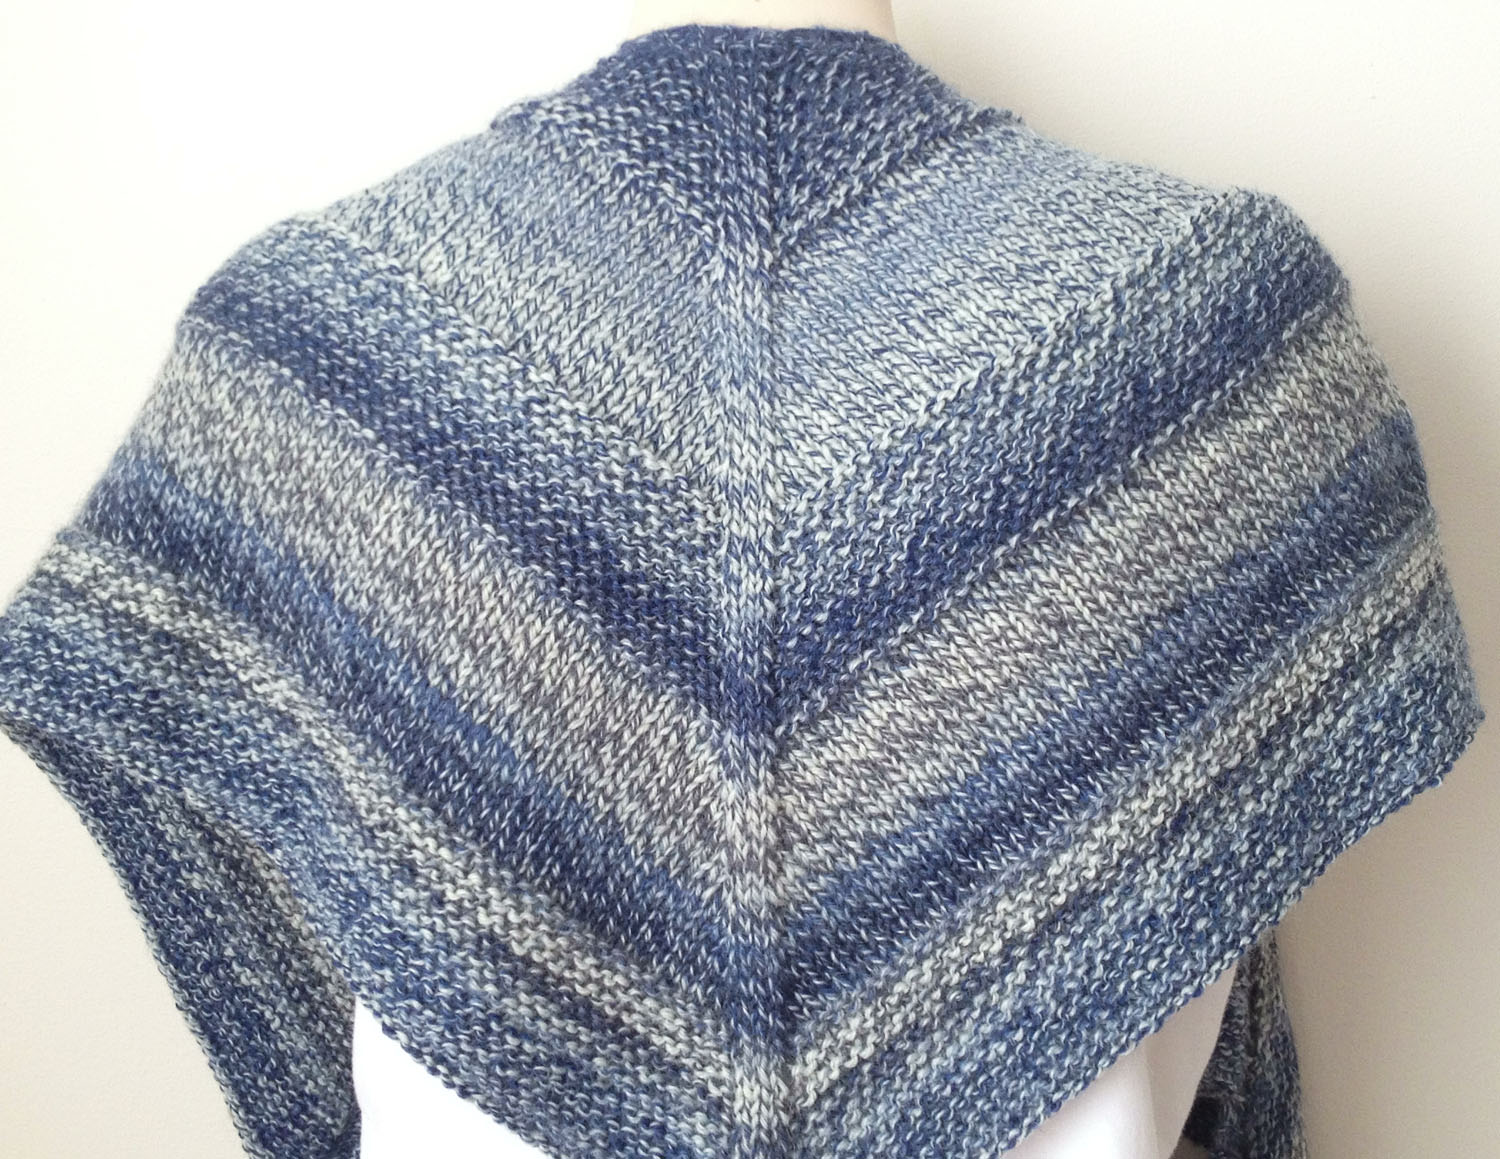 Knitting Pictures Free : Free knitting pattern weekender shawl